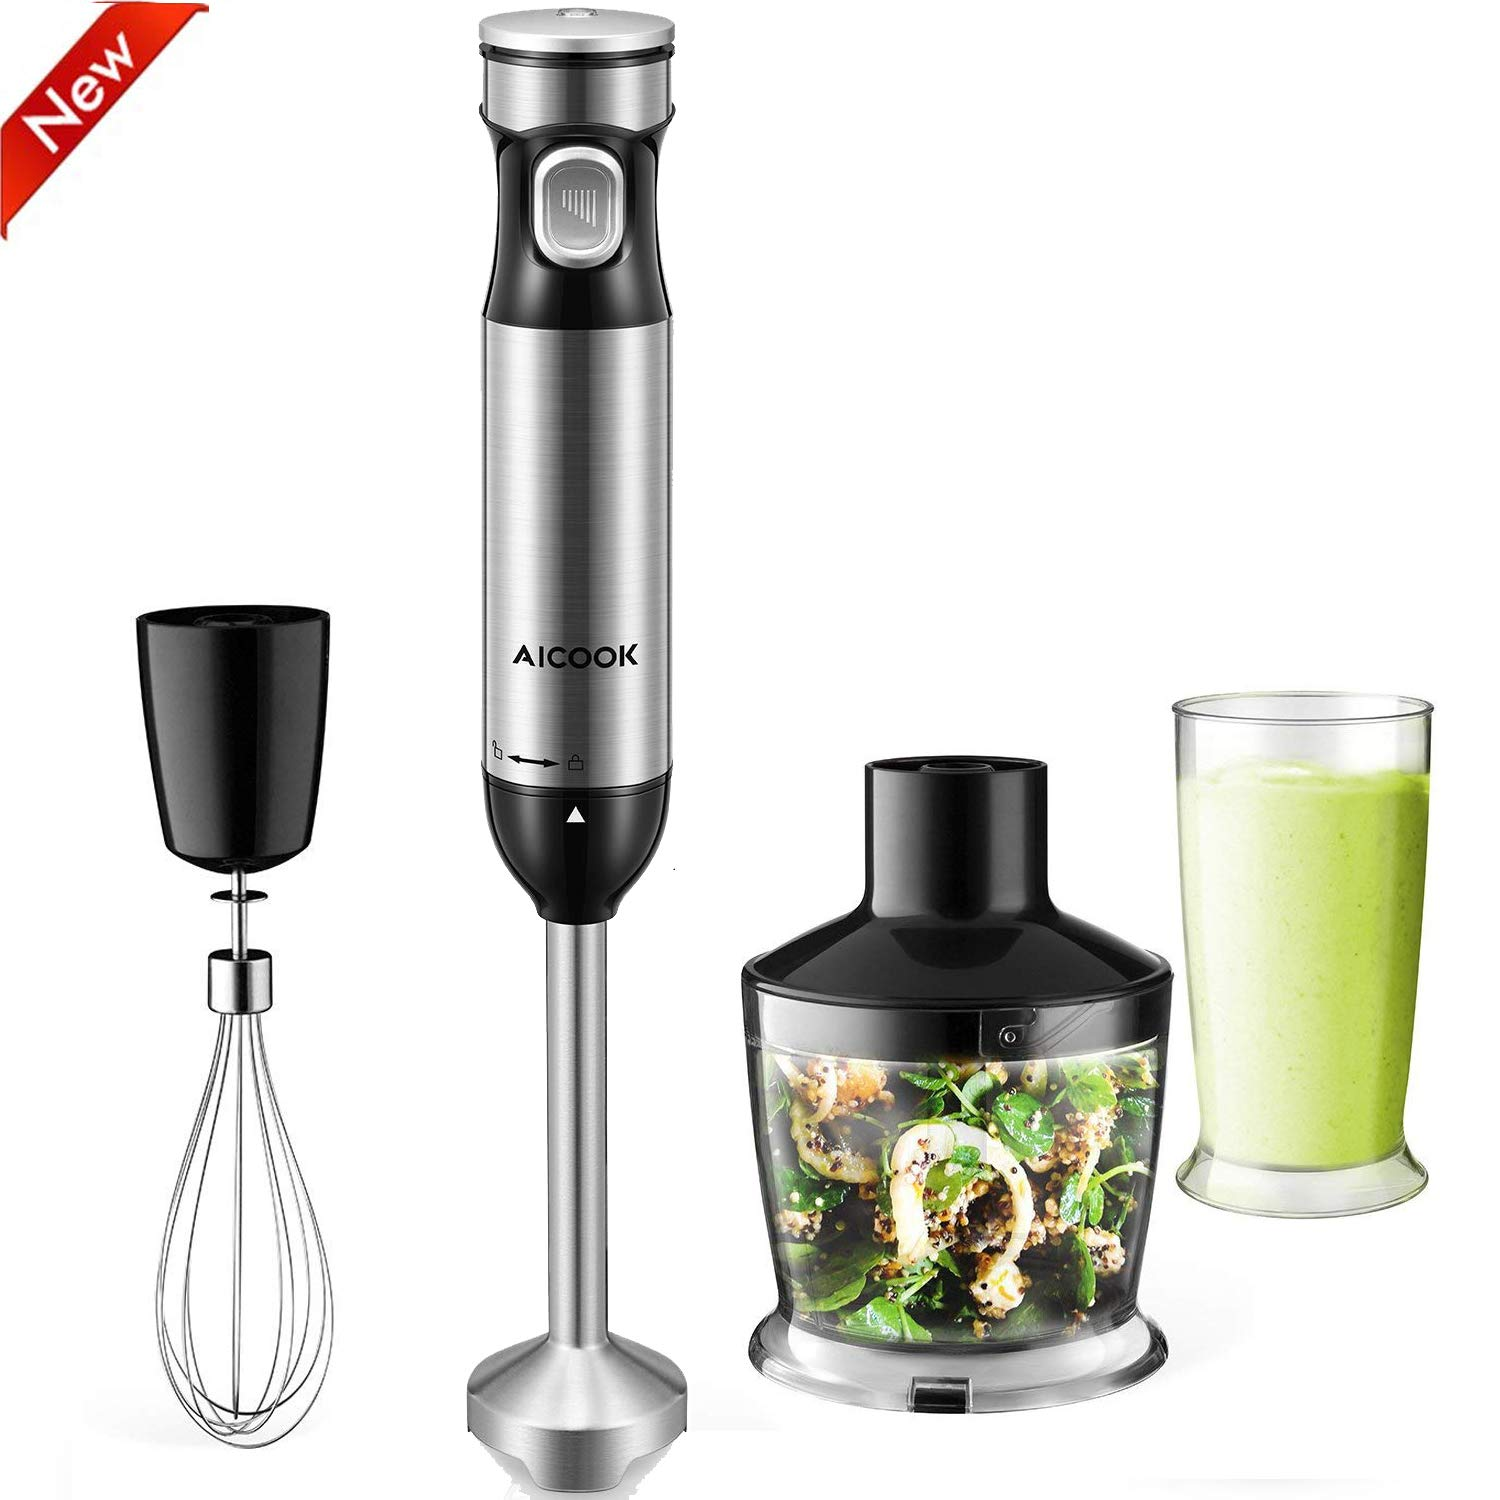 AICOOK Immersion Blender 4 in 1 Hand Blender with Stepless Speed Control Heavy Duty Copper Motor, Include hand blender stick, BPA-Free Beaker, Food Processor, Whisk Attachments, Titanium Coating Blade